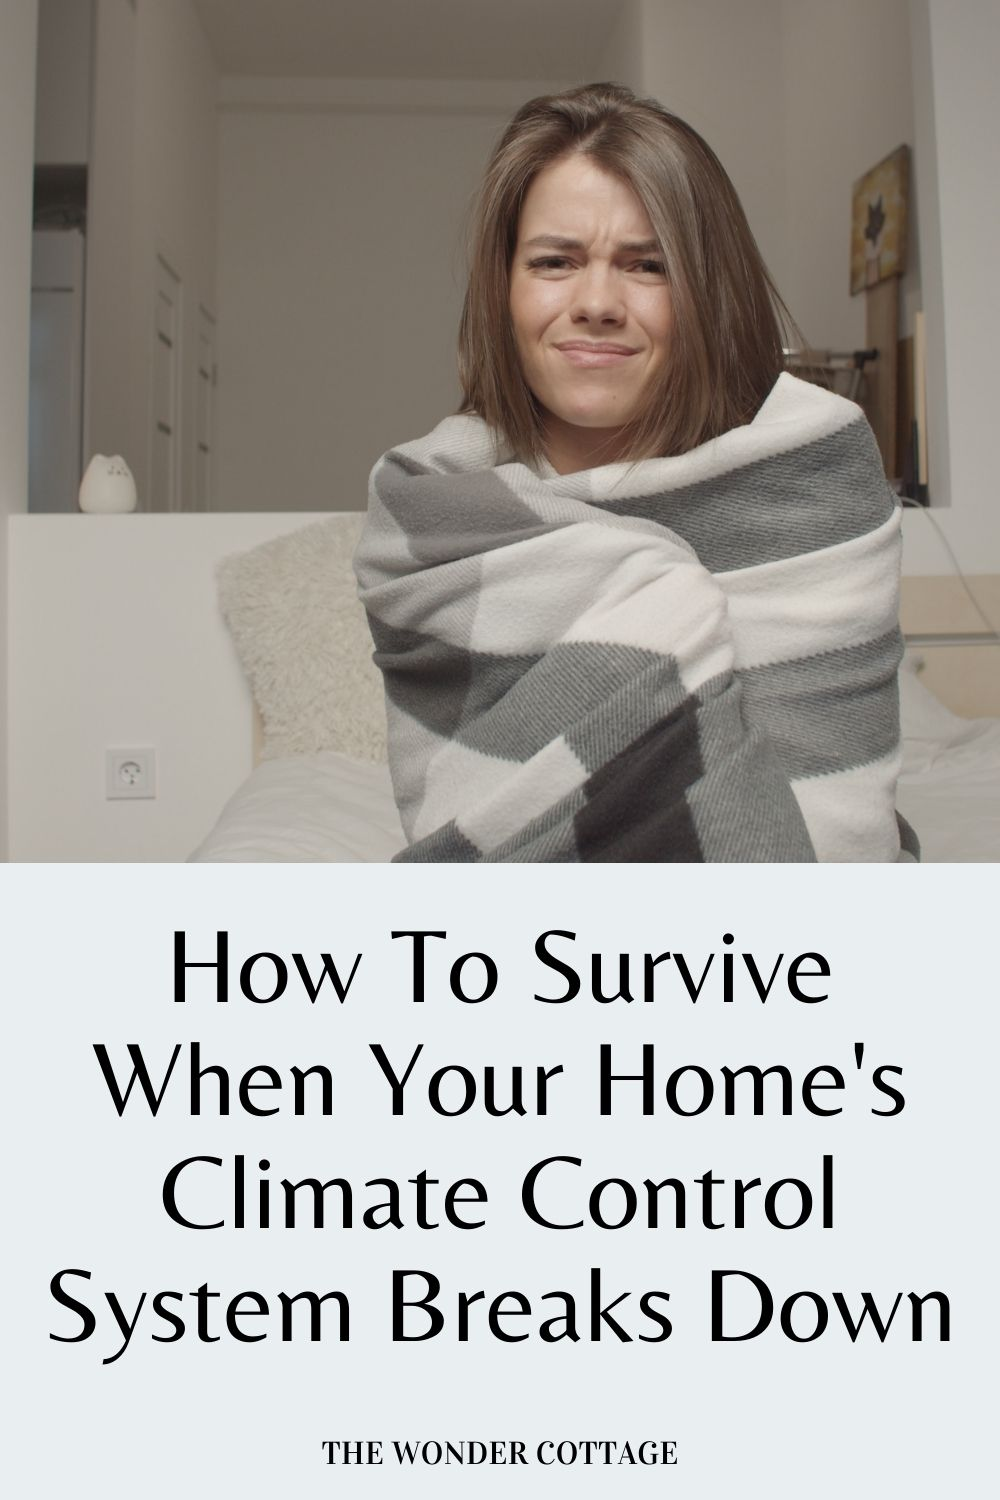 how to survive when your home's climate control system breaks down